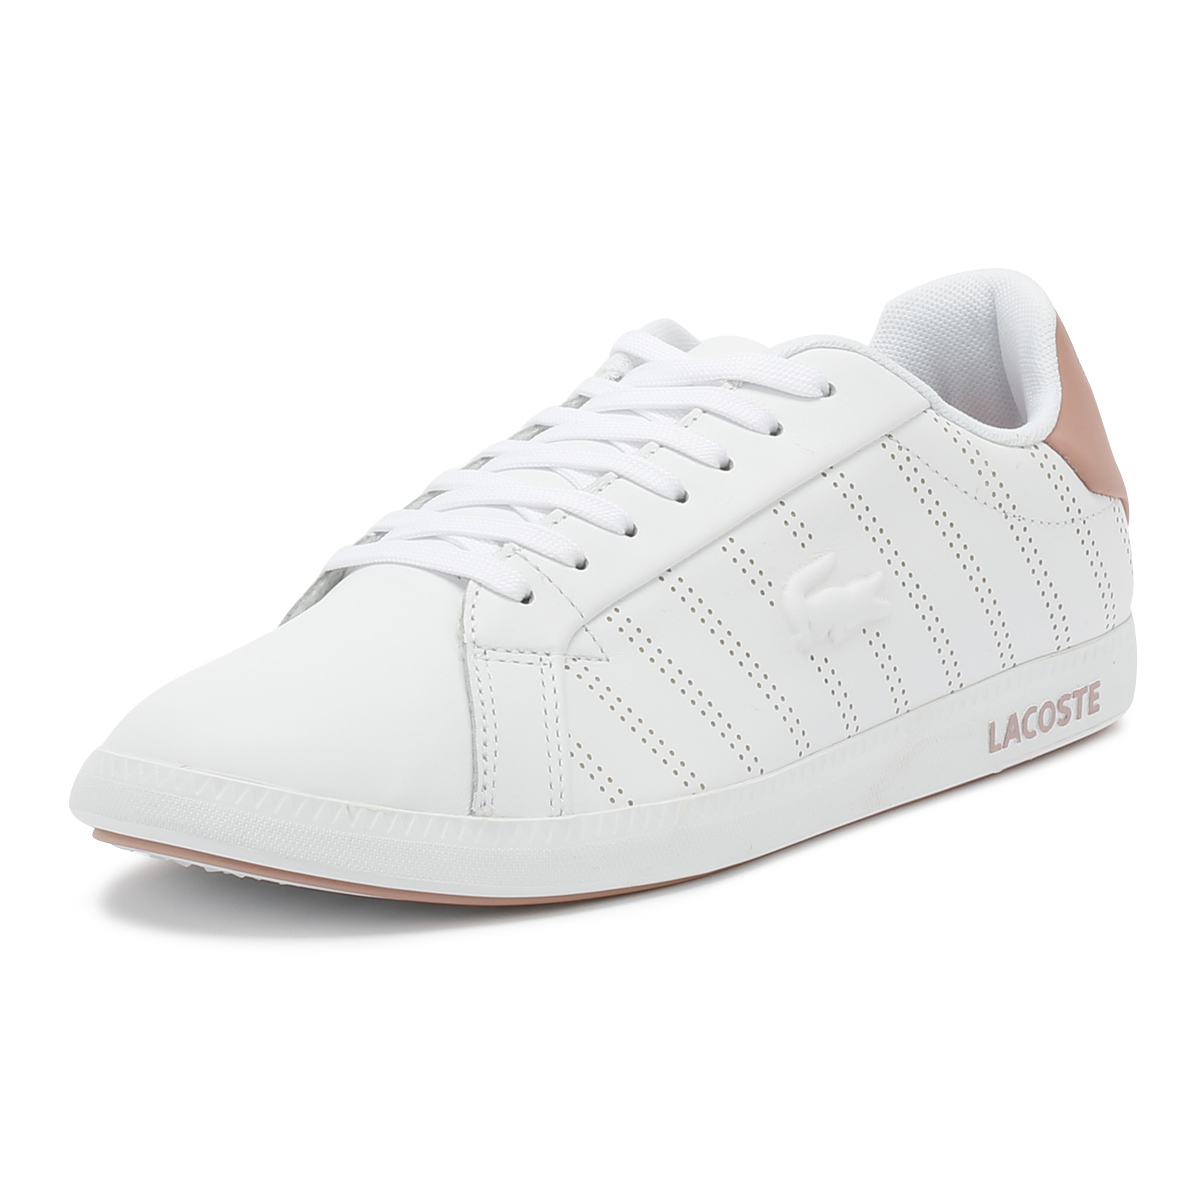 d4e4a3f97427 Details about Lacoste Womens Trainers White   Pink Graduate 318 1 Lace Up  Sport Casual Shoes